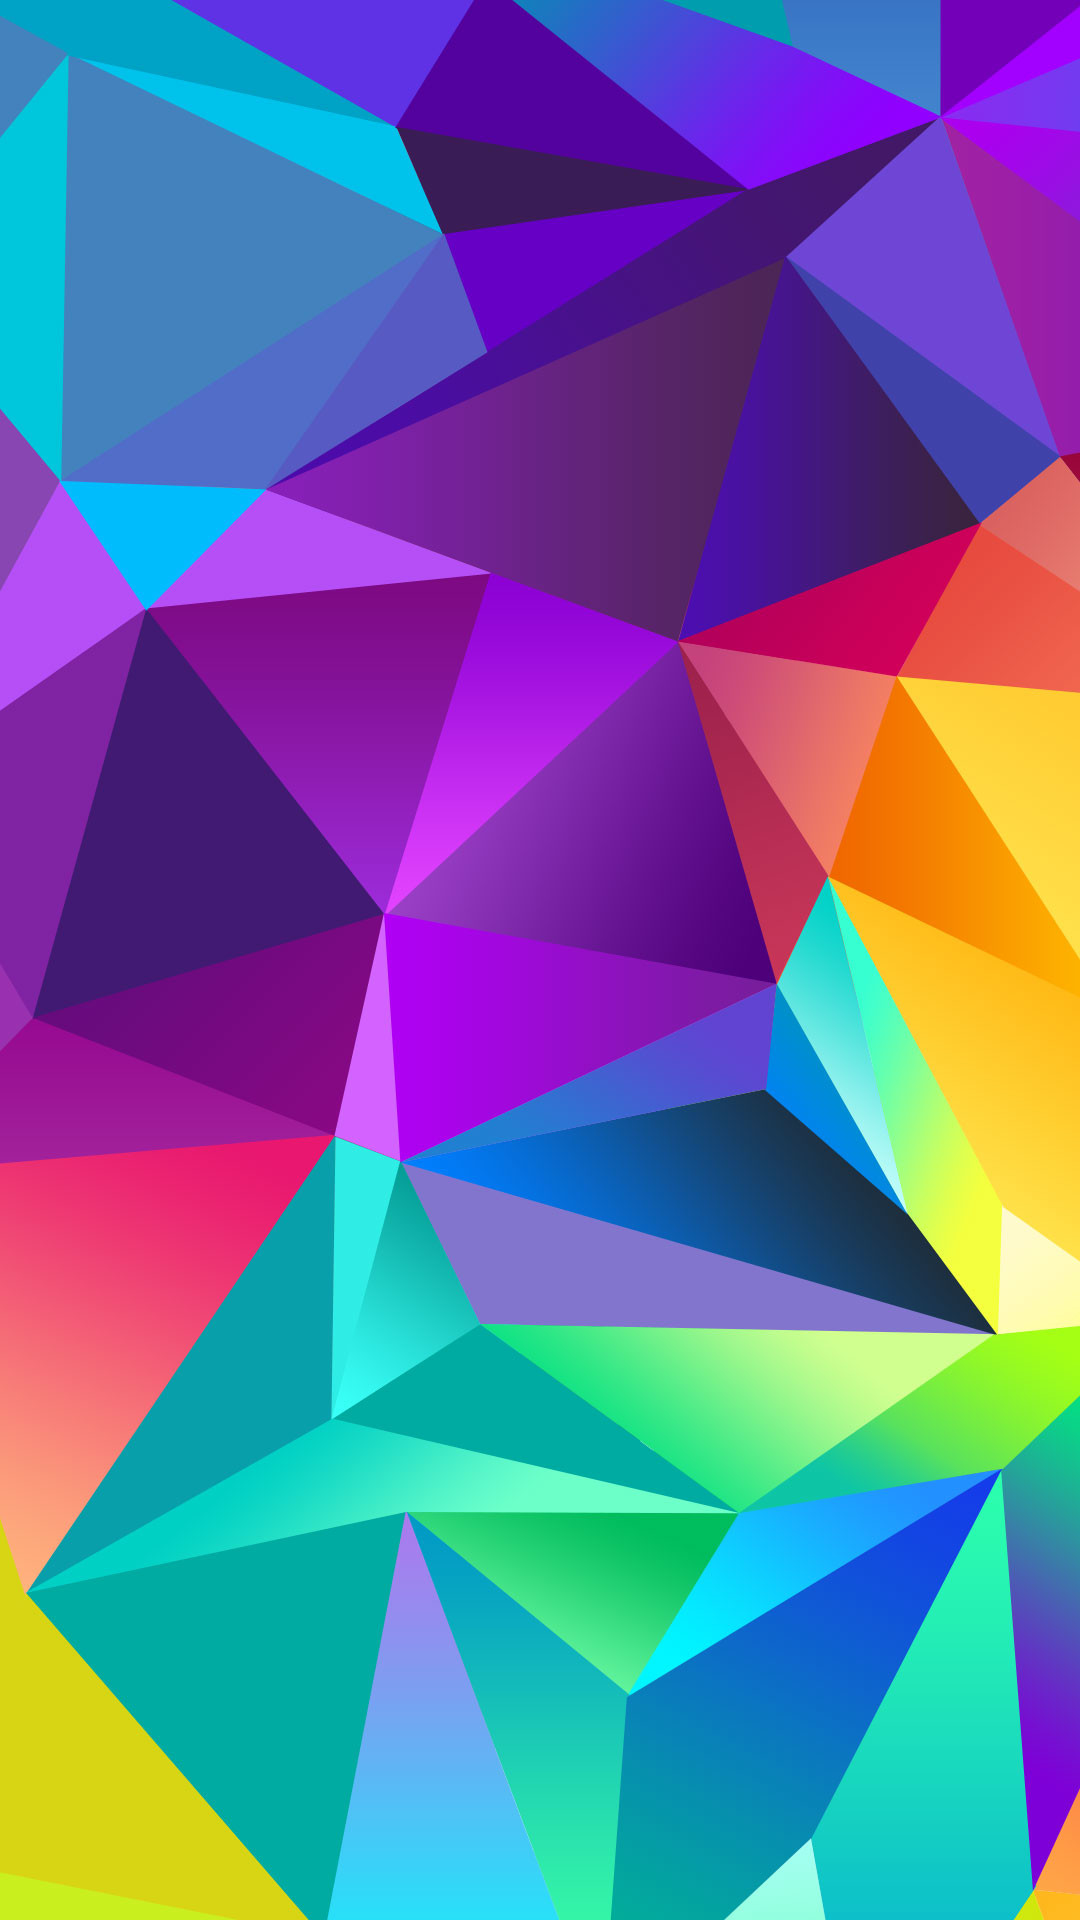 1080x1920 Colorful 3d Design Wallpaper. abstract iphone wallpaper